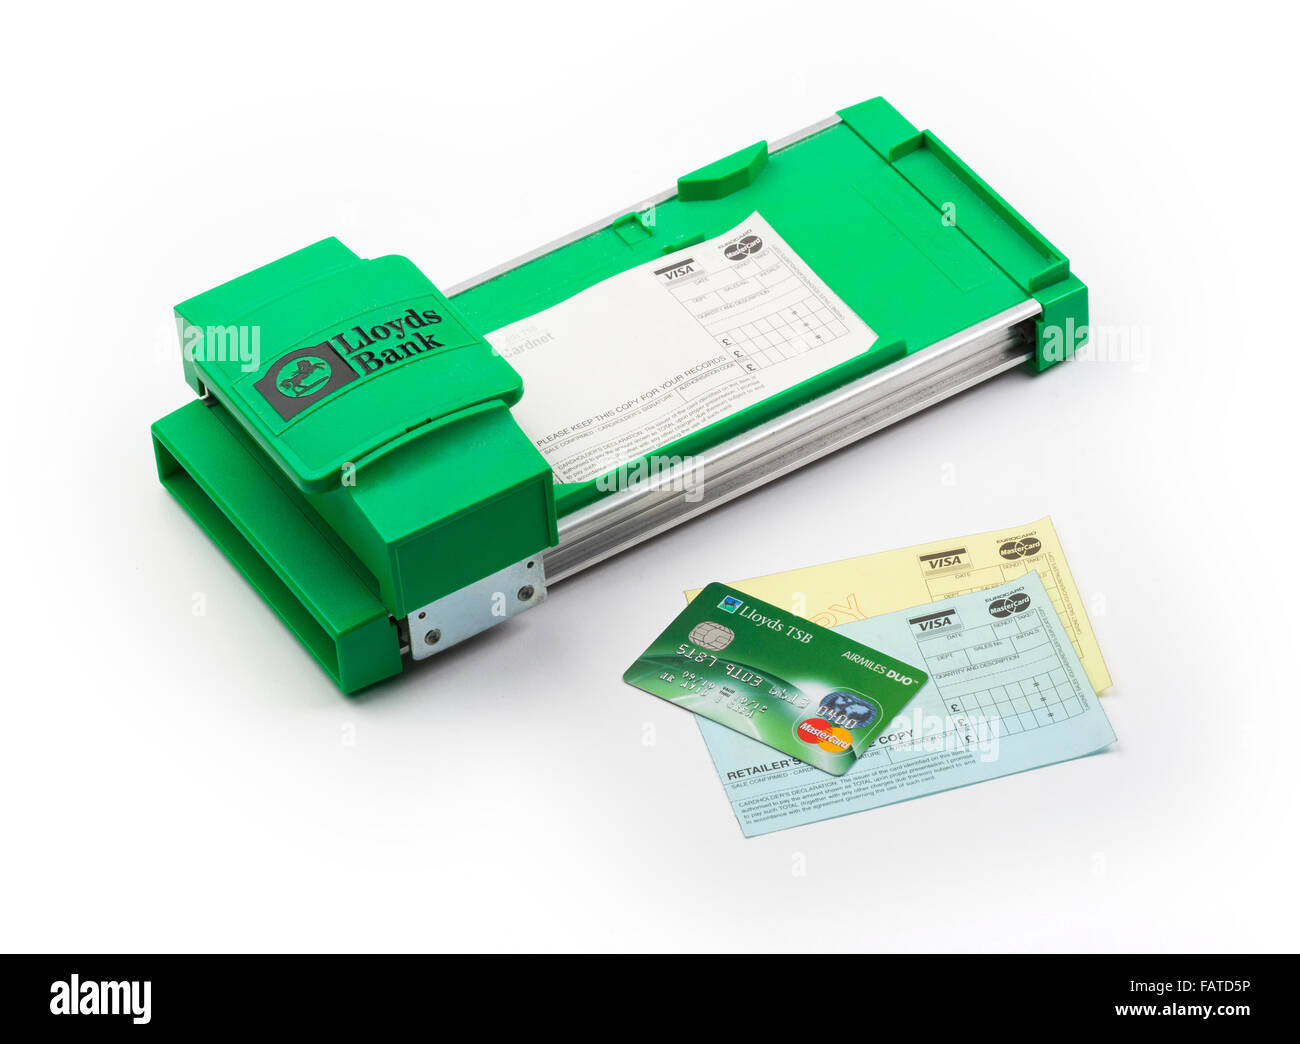 Manually operated credit card imprinter machine - Stock Image